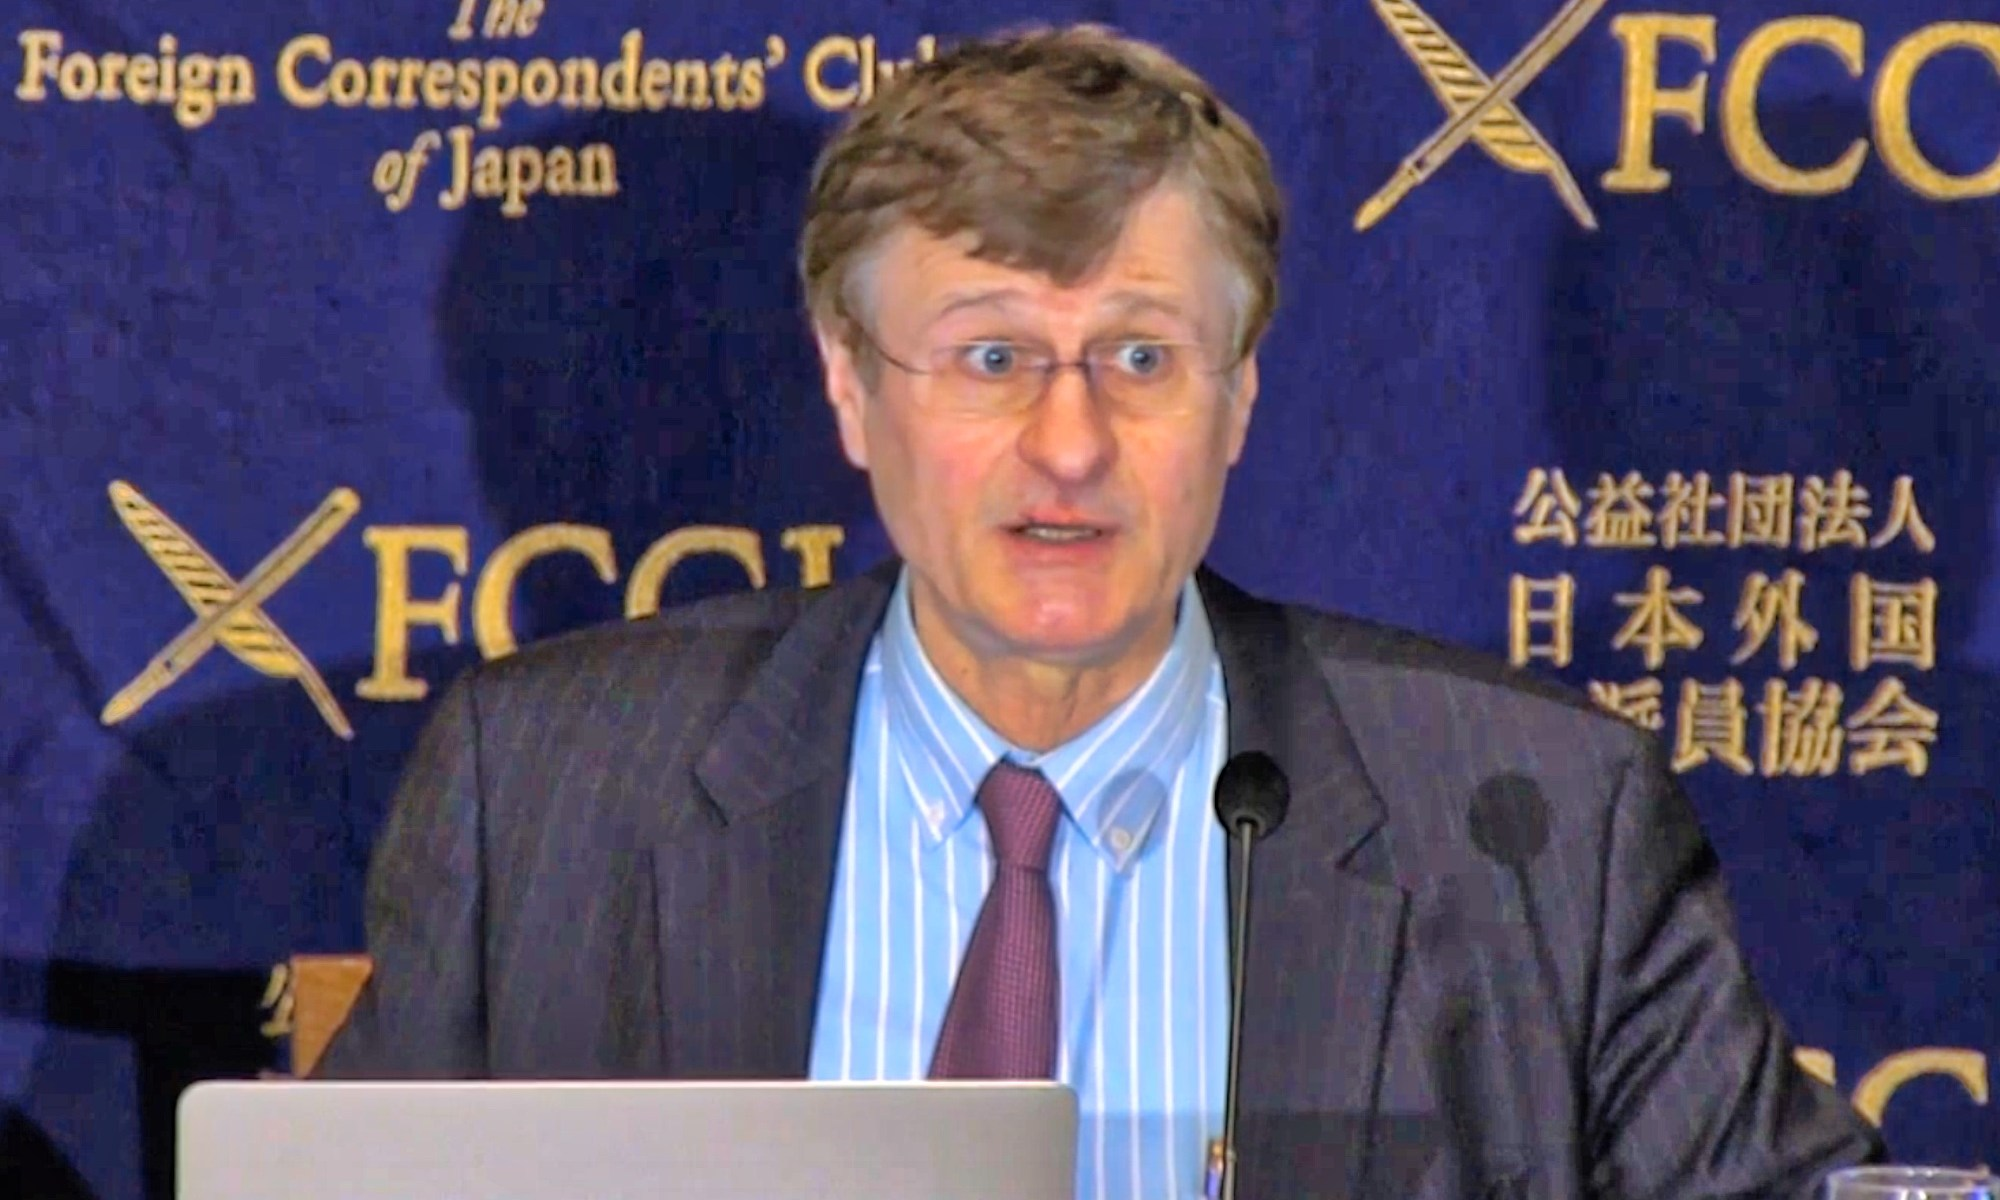 Corporate Governance Reforms in Japan, Gerhard Fasol at the Foreign Correspondents Club FCCJ 12 March 2018